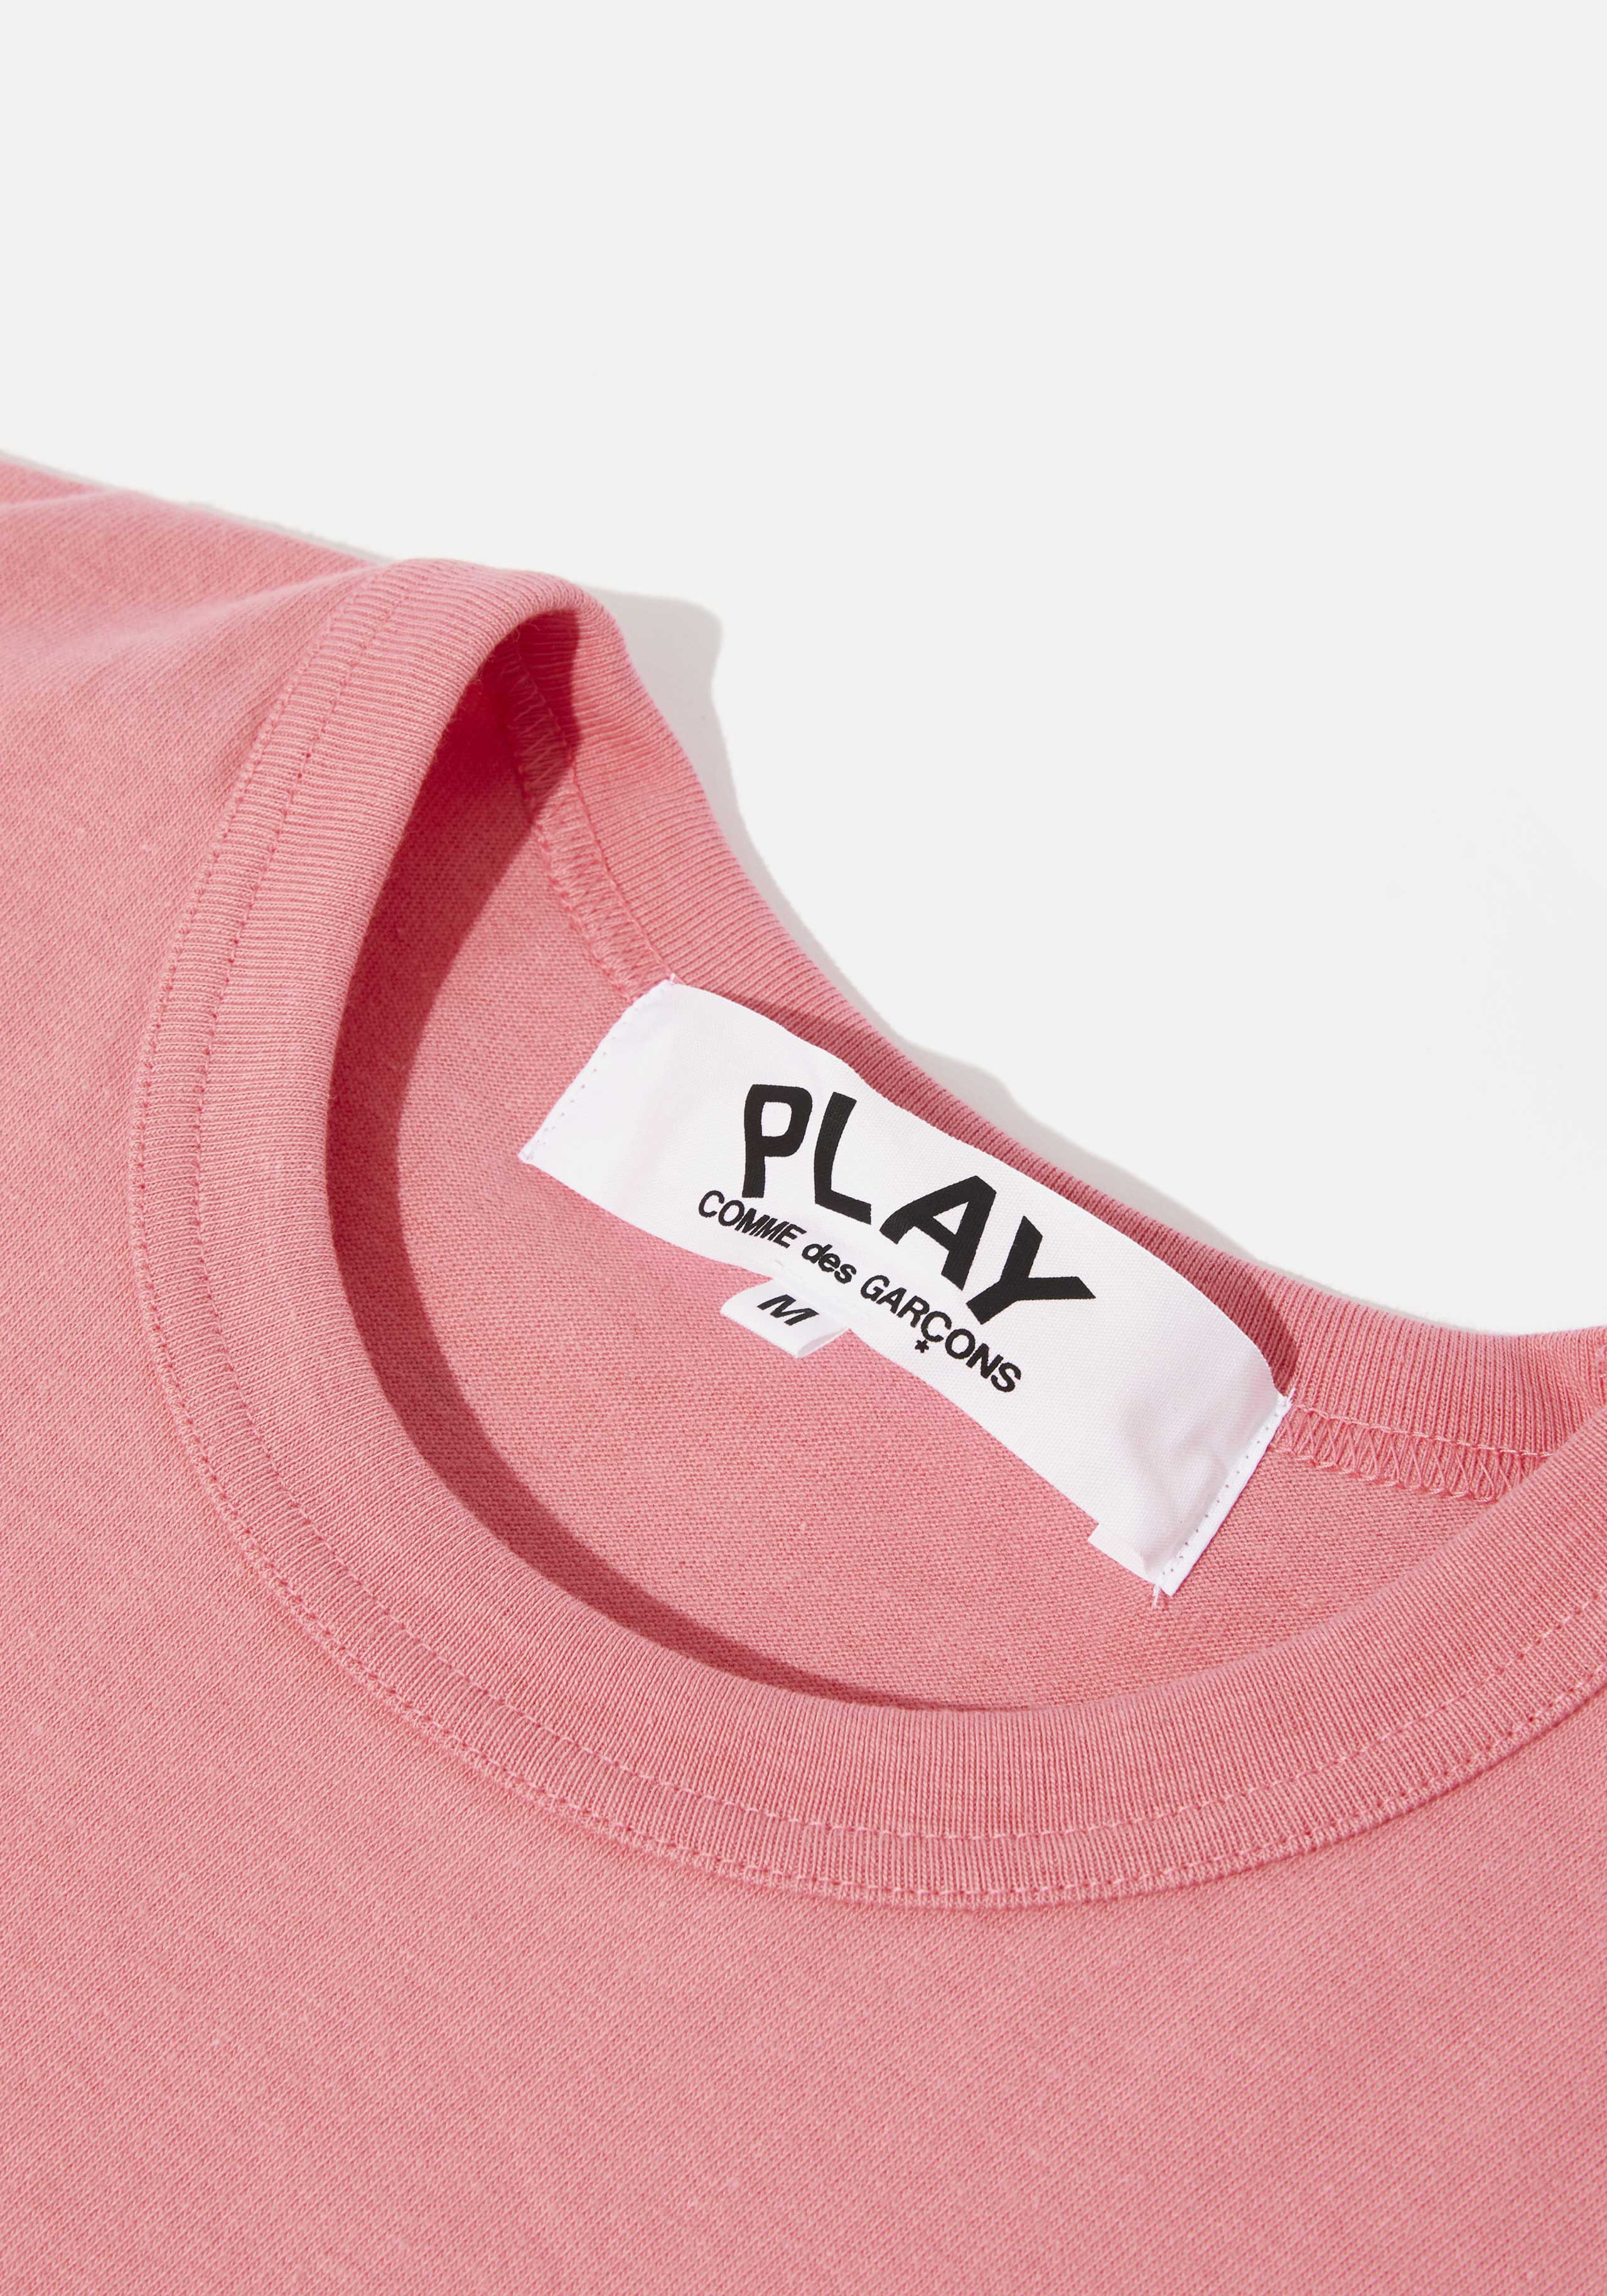 comme des garcons play bright red heart tee 3